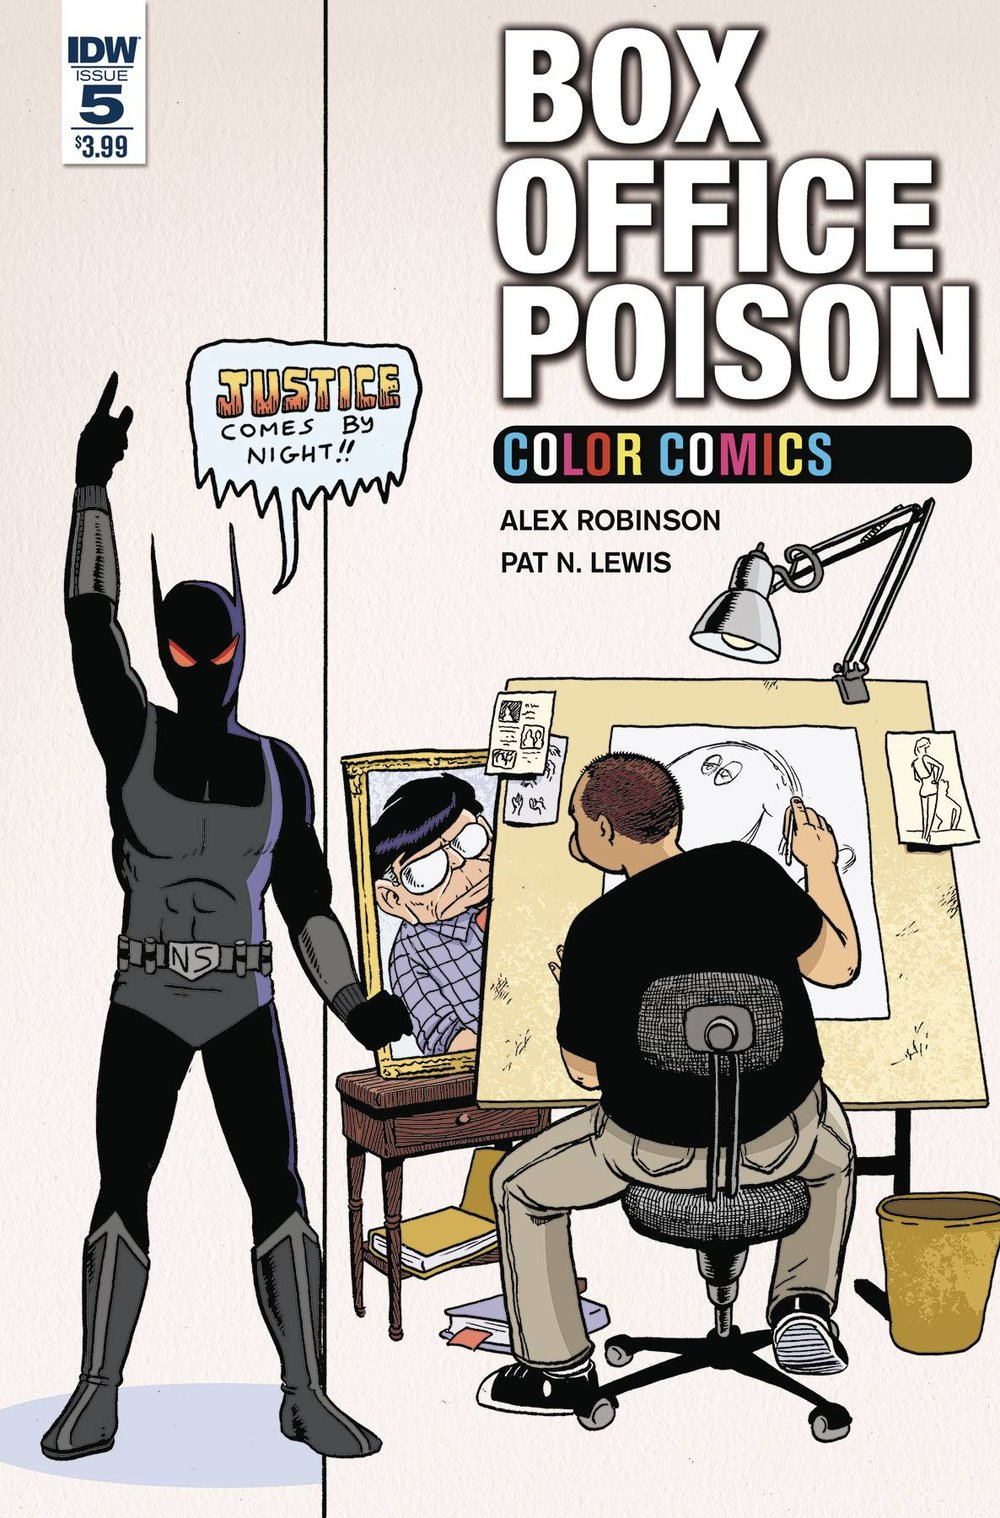 BOX OFFICE POISON COLOR COMICS 5.jpg